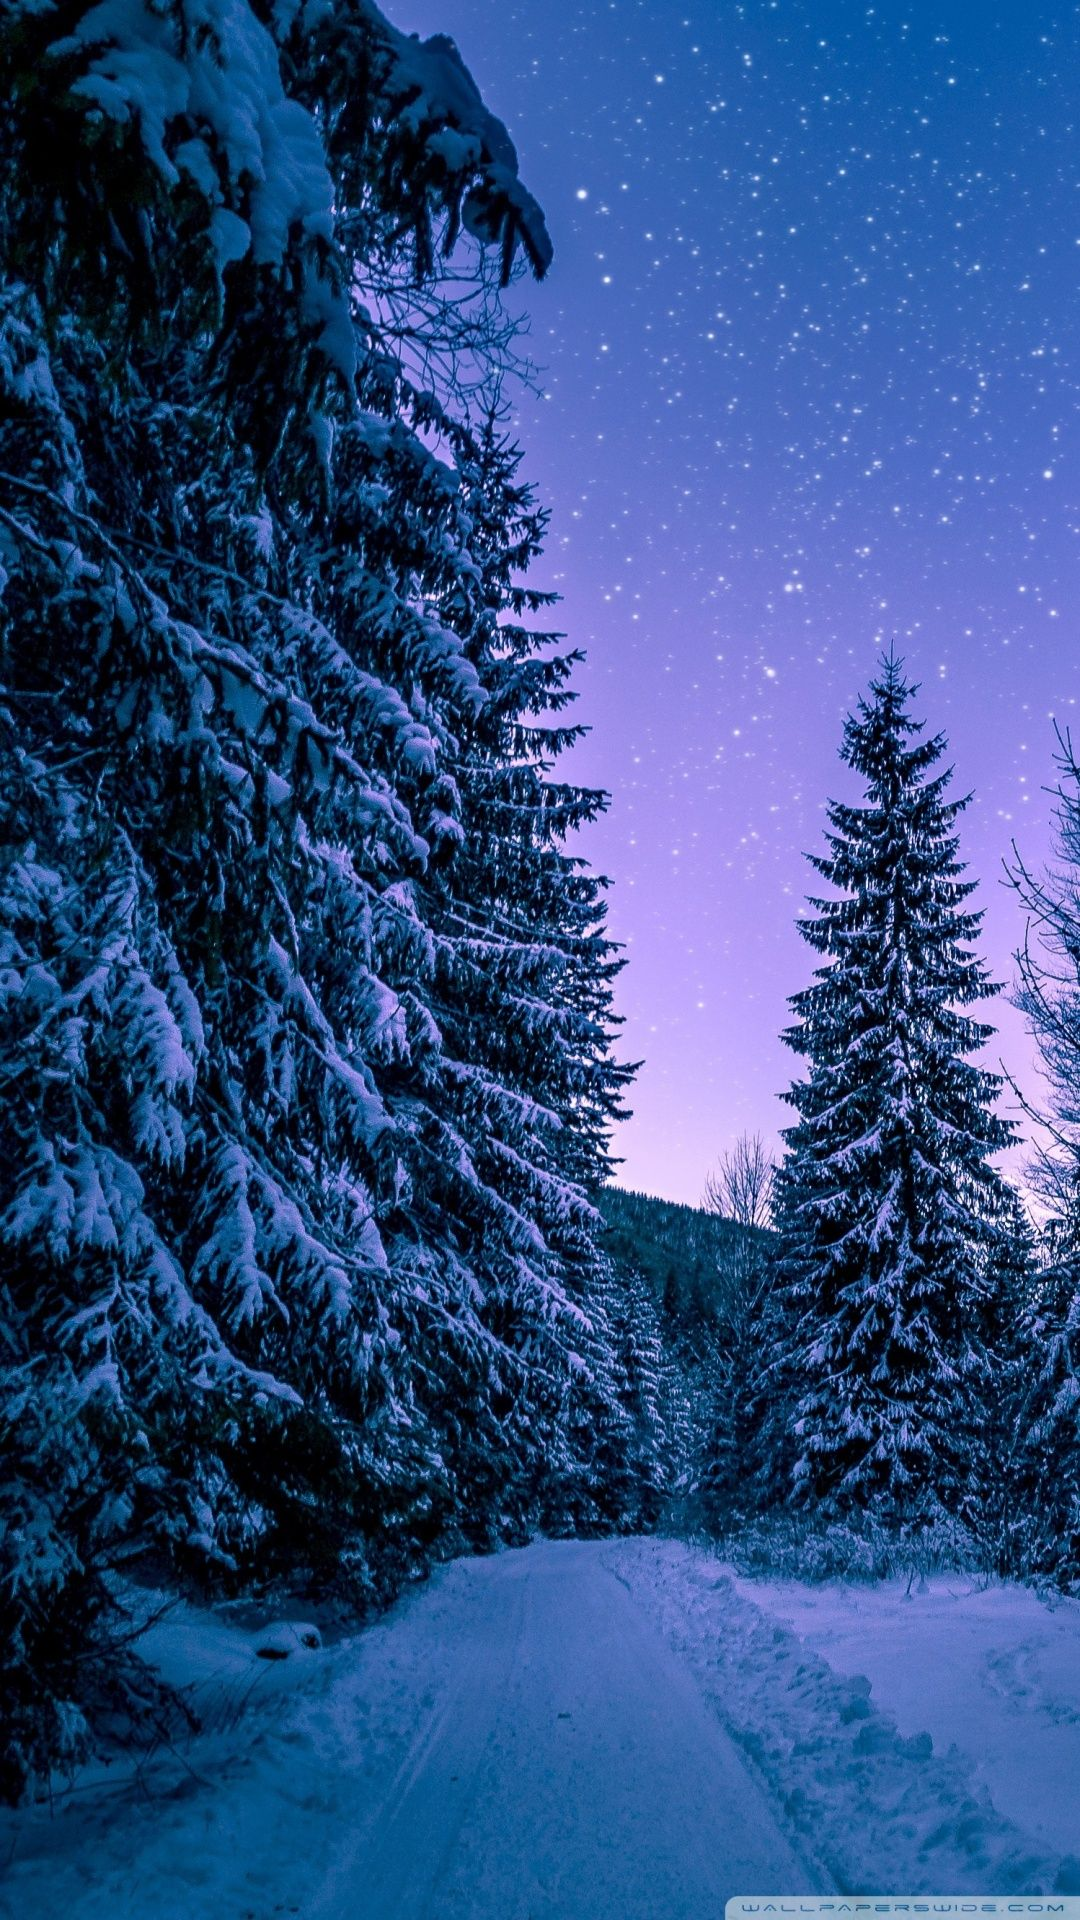 Night Snow Hd Wallpaper Android night snow hd